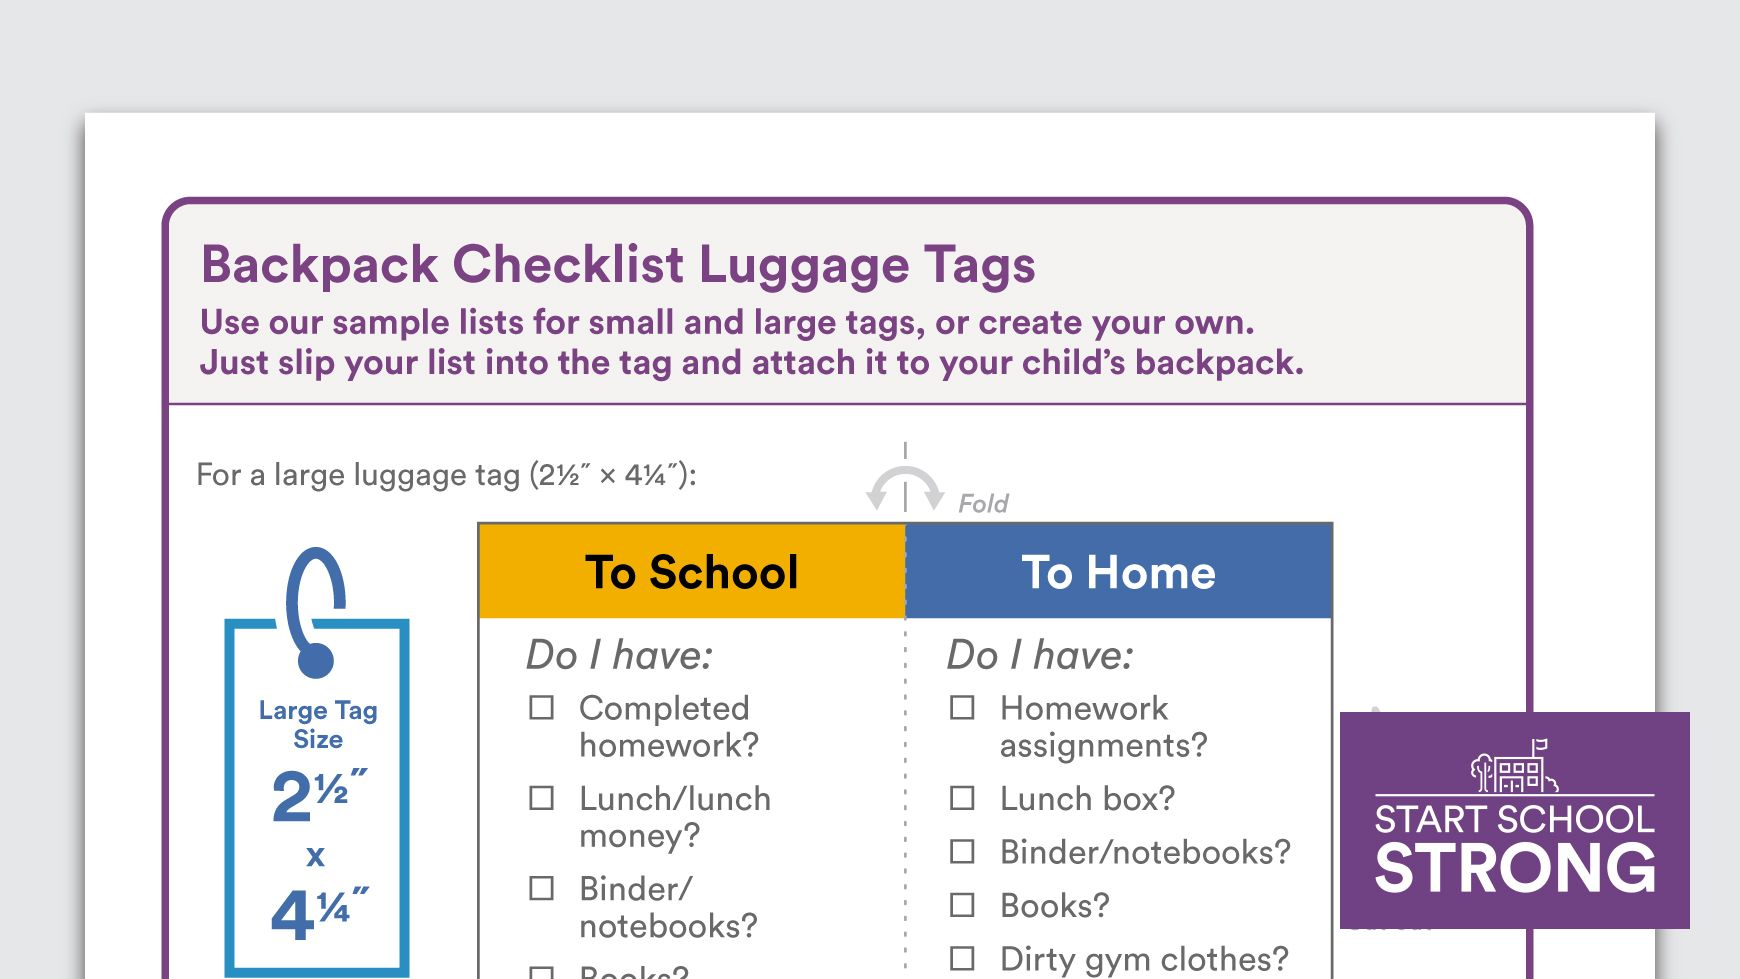 Download Backpack Checklist